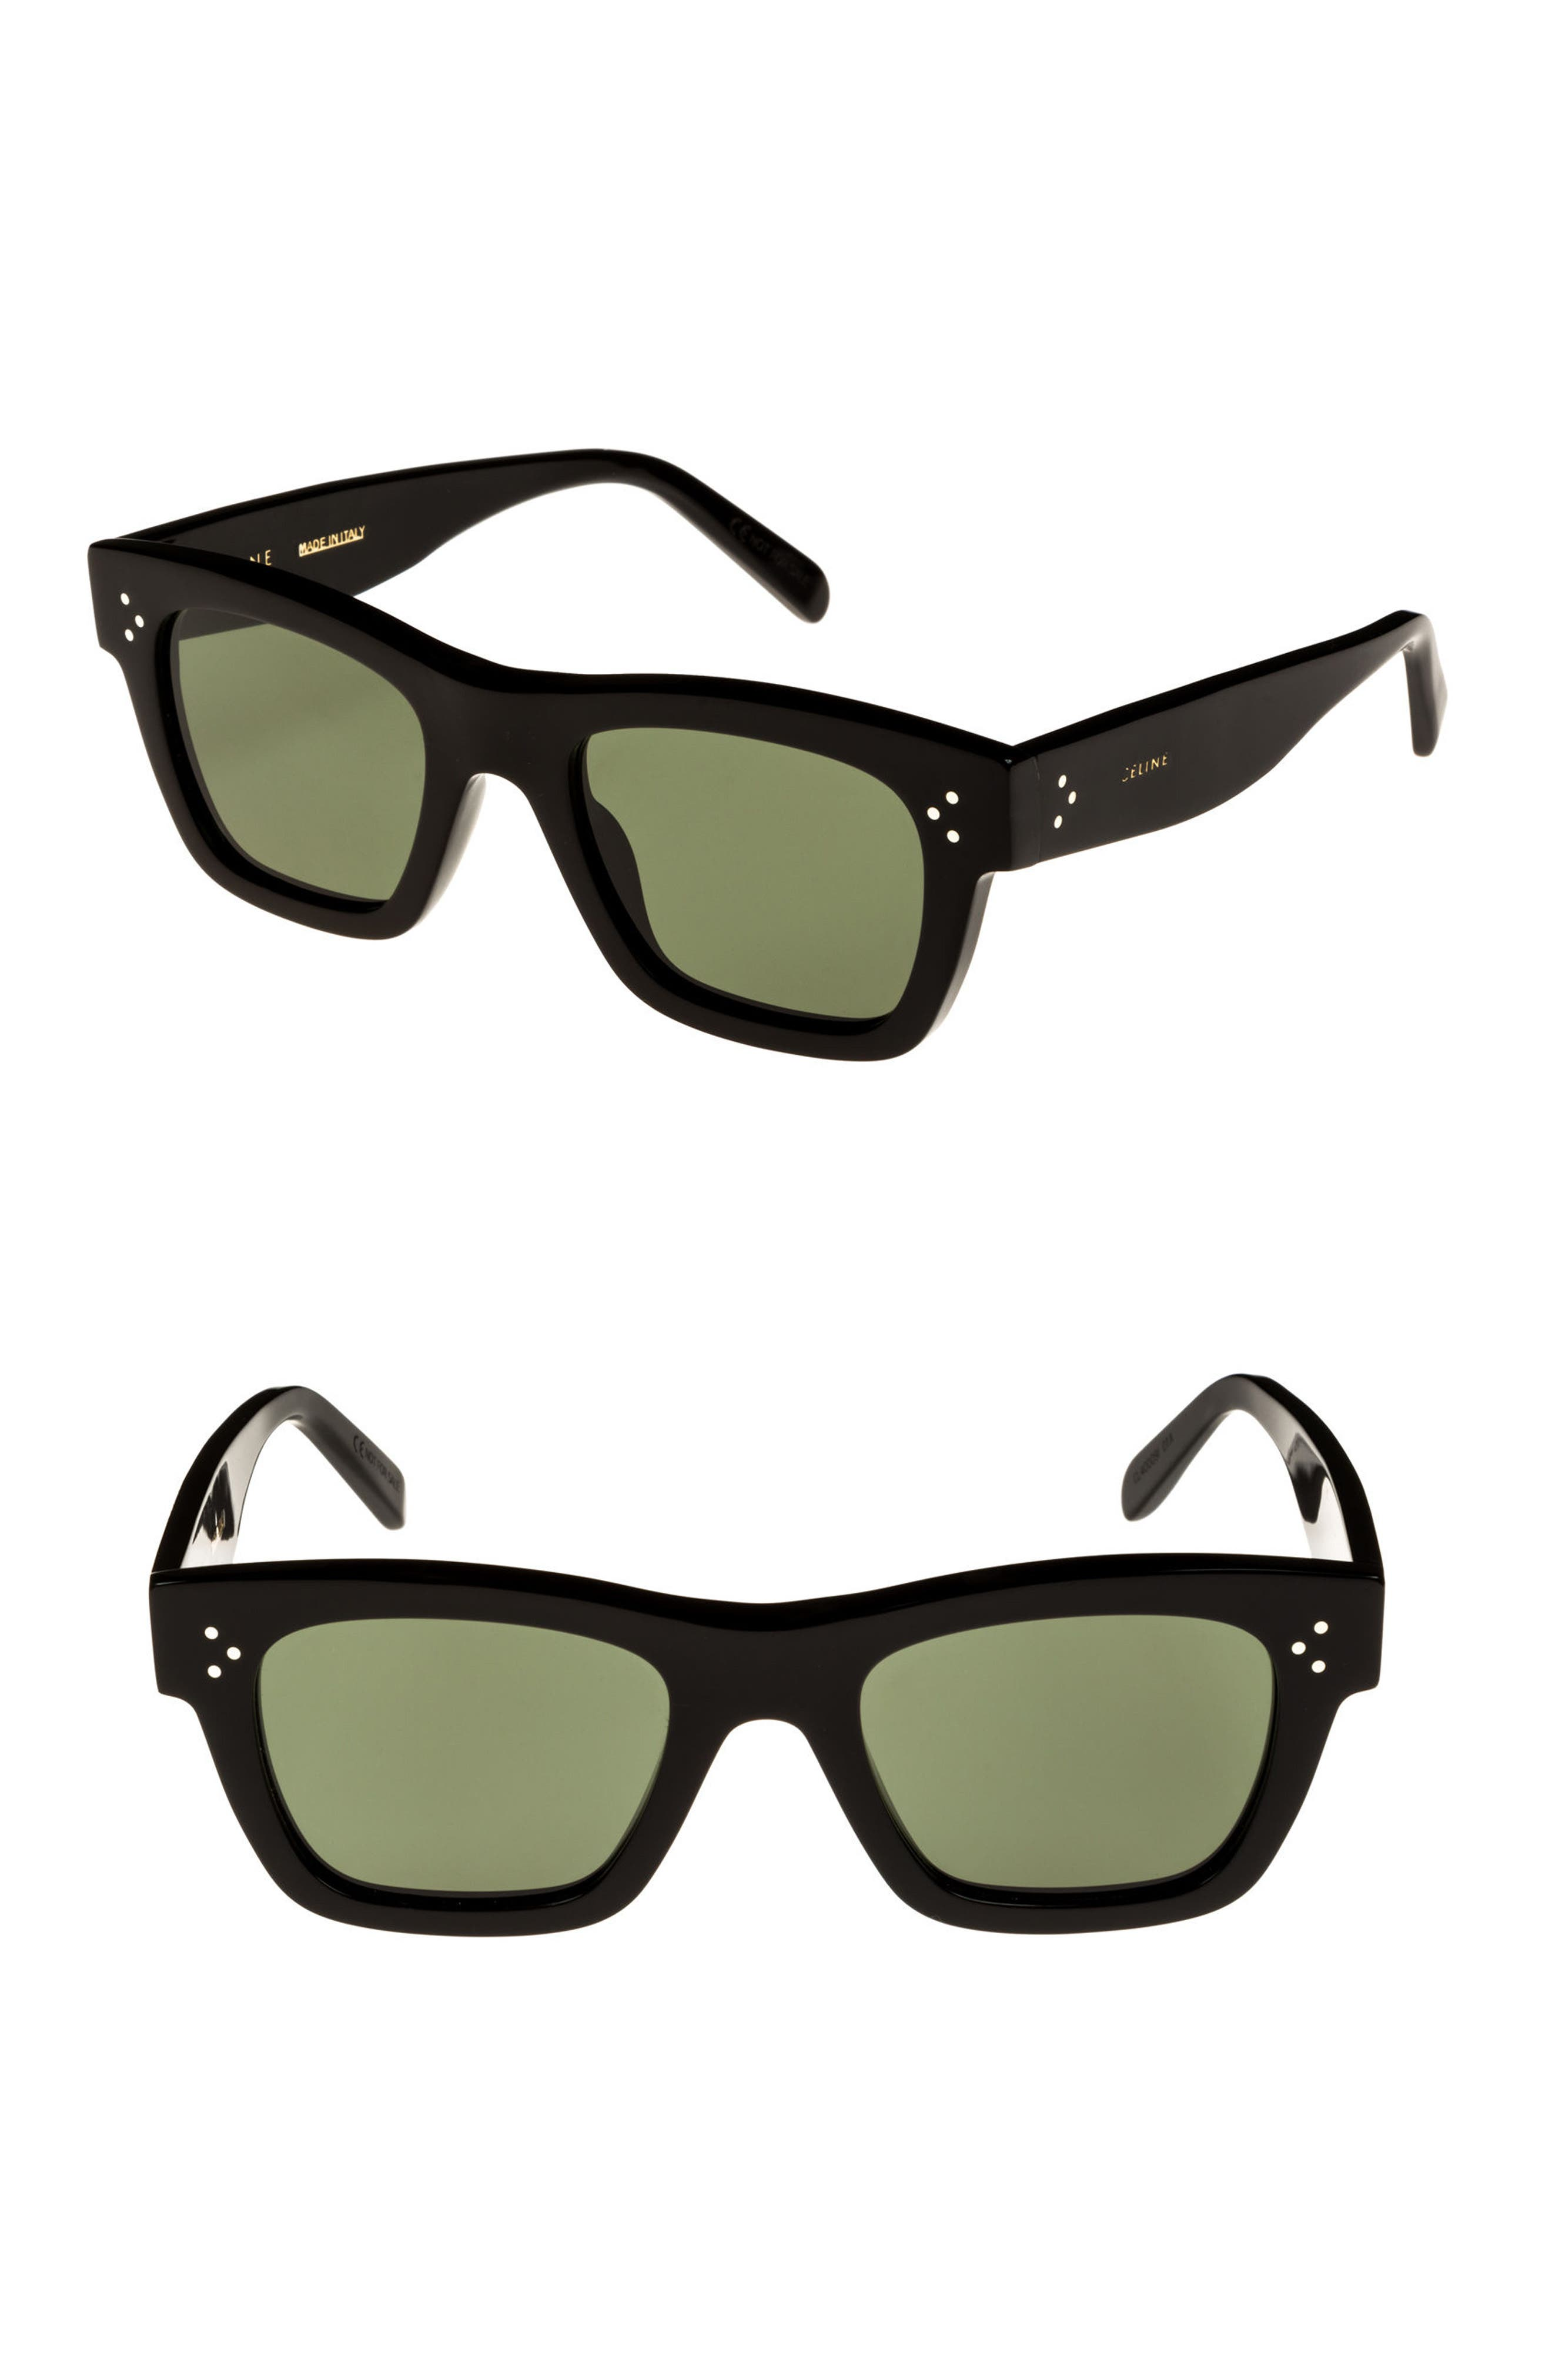 51mm Rectangle Sunglasses,                         Main,                         color,